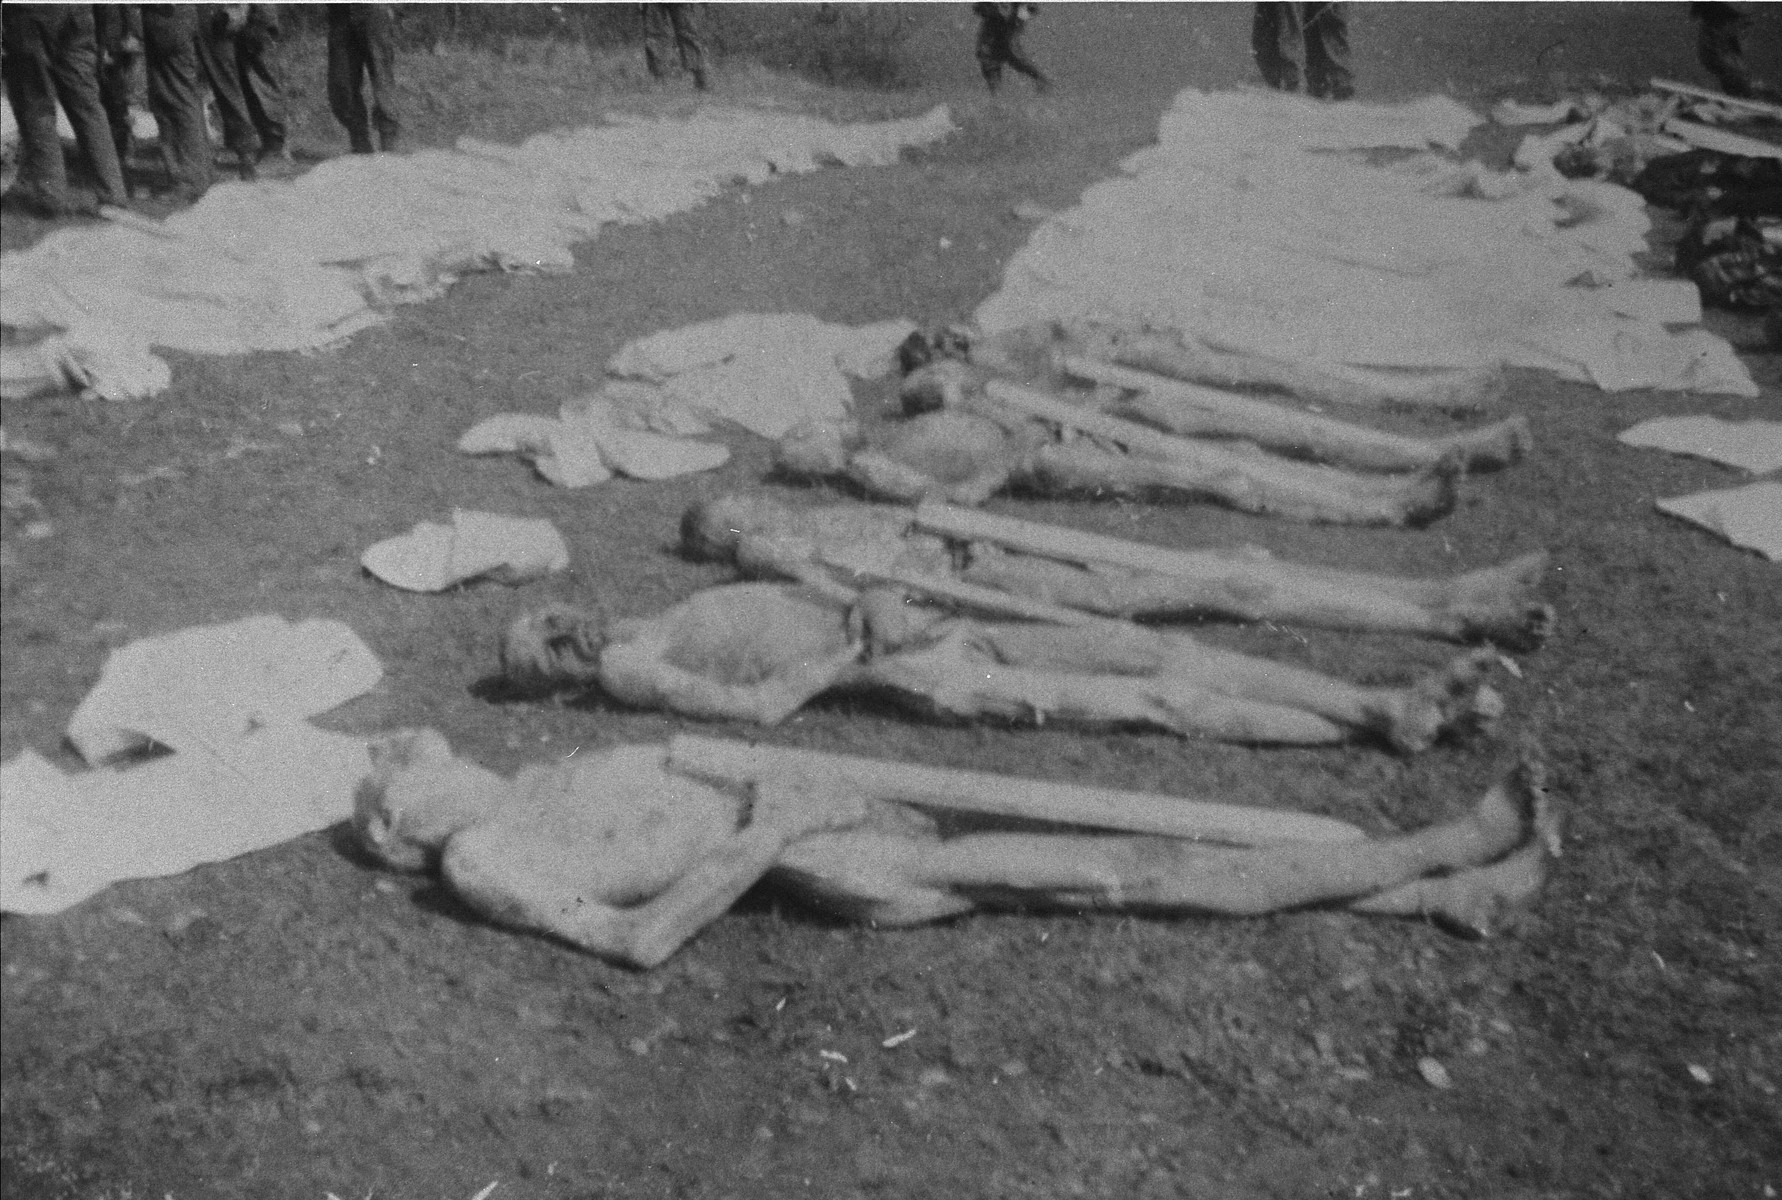 Prisoners' corpses awaiting burial.  Each corpse has been assigned a numbered grave marker.